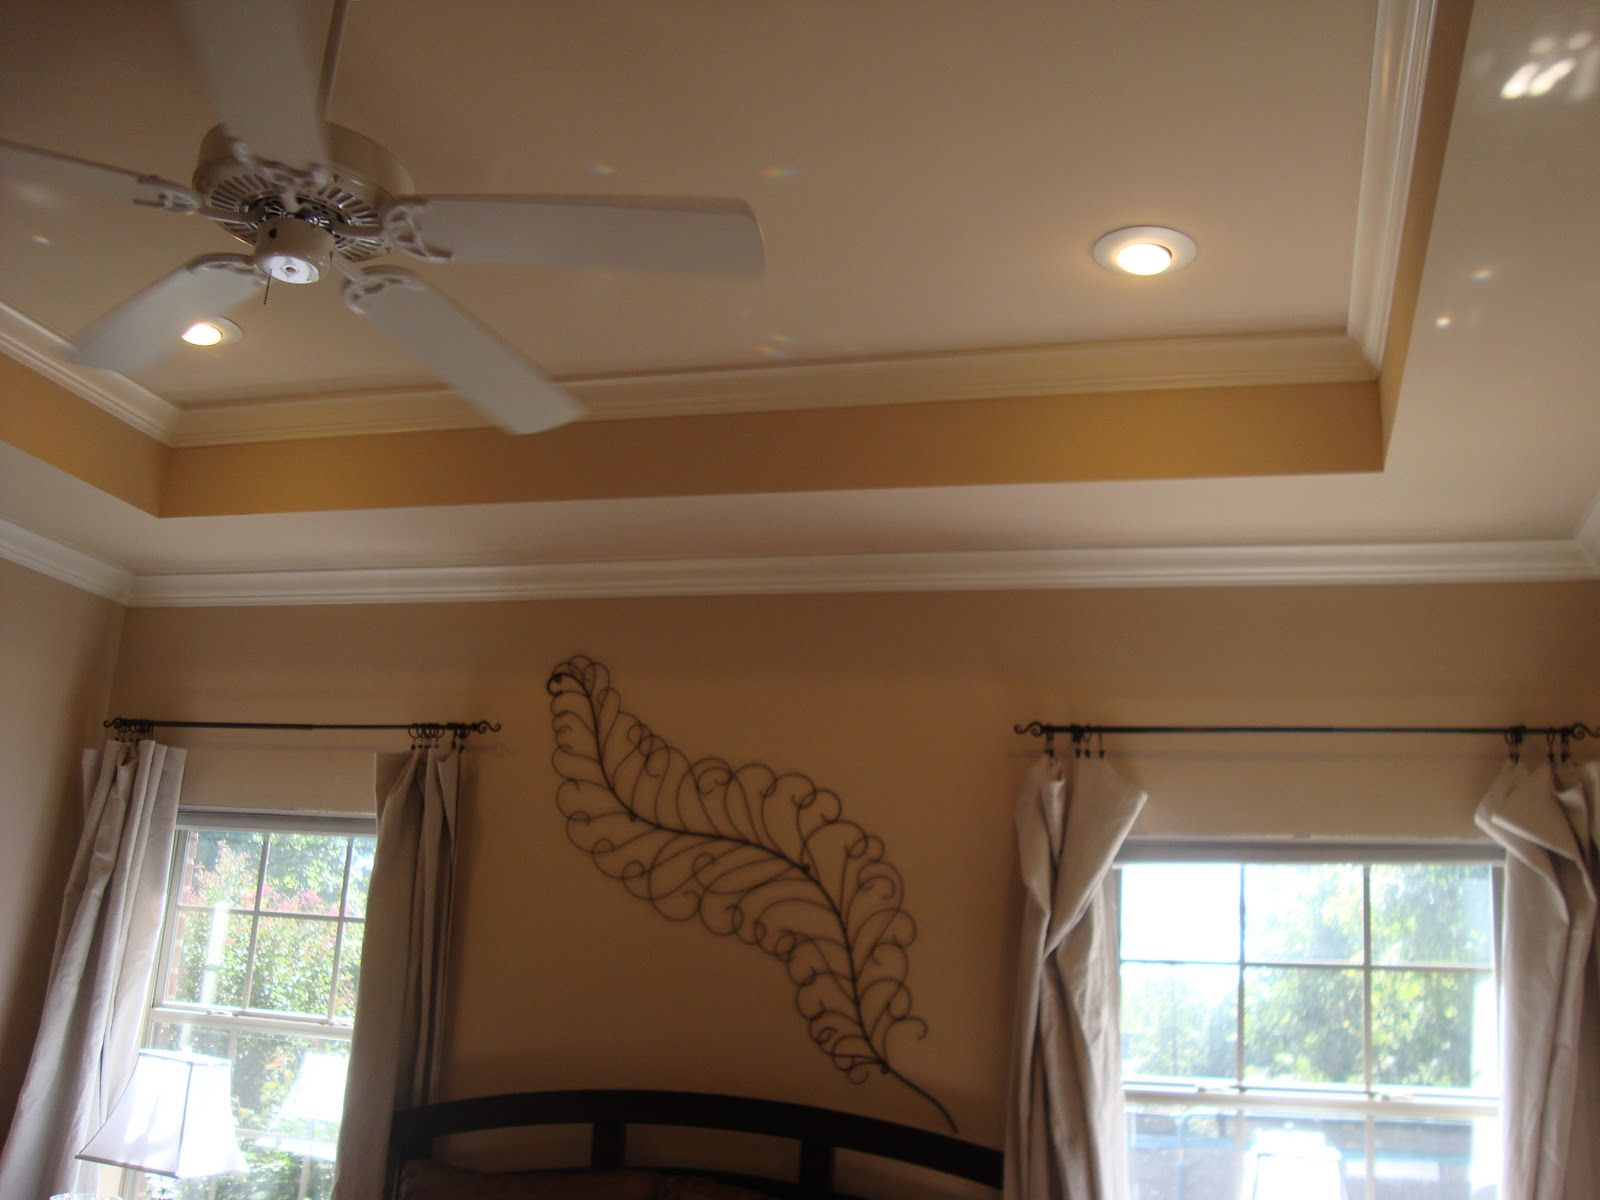 Bedroom Tray Ceiling Molding Painting Ideas